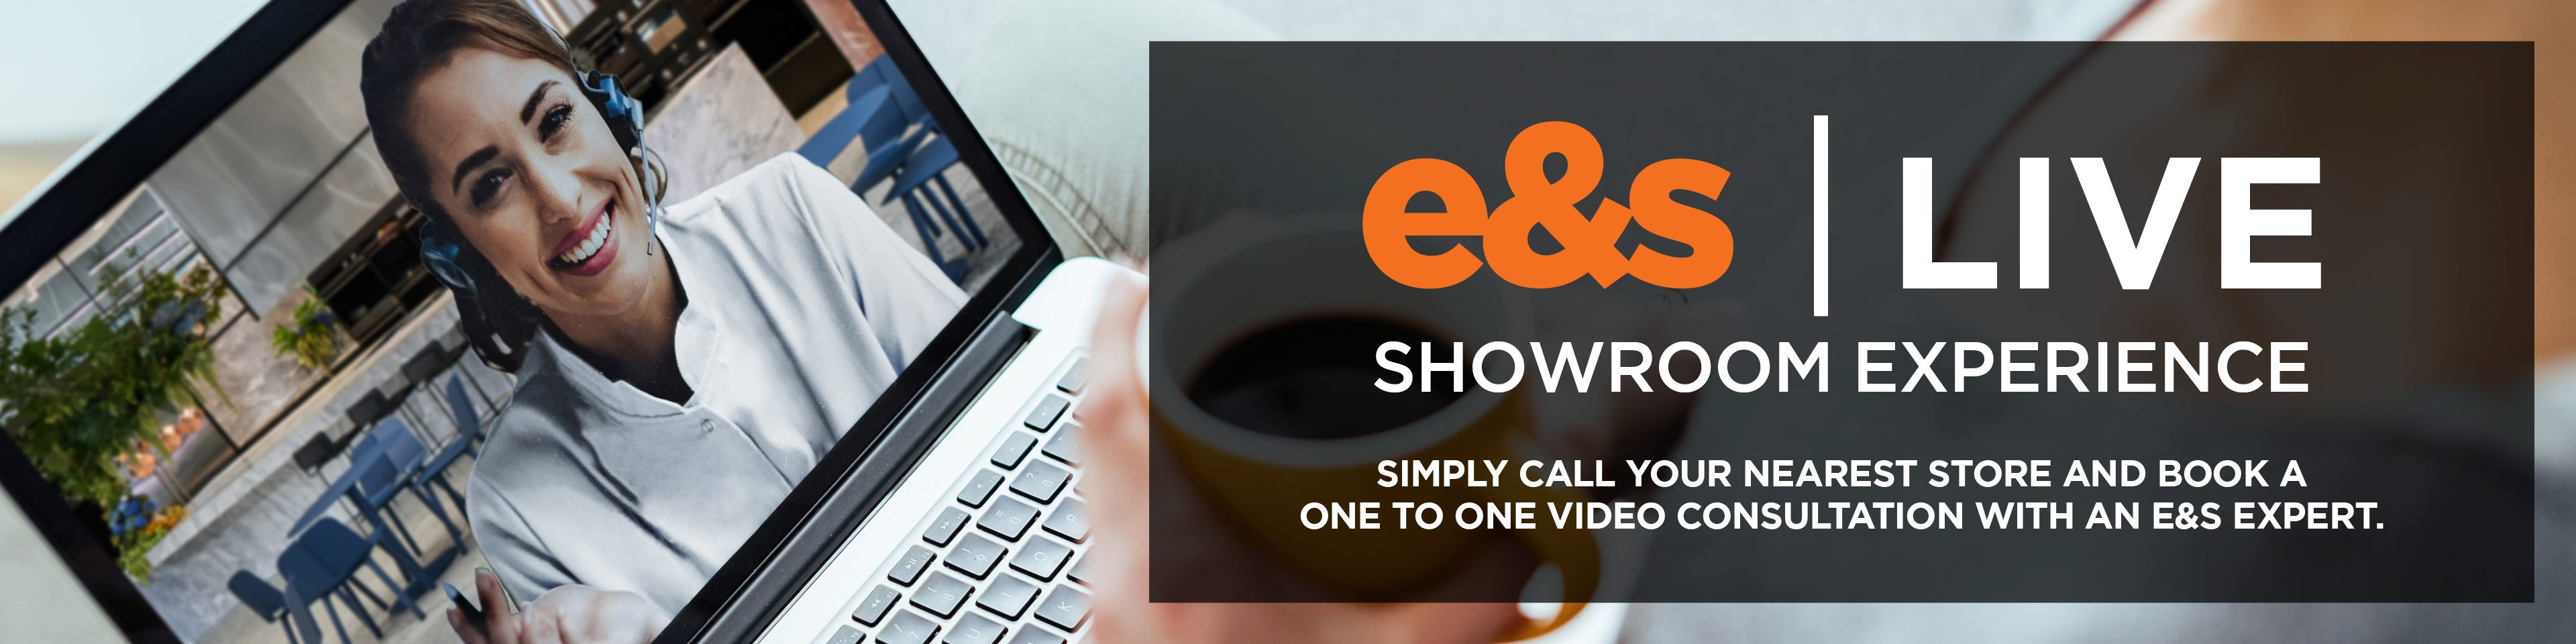 e&s Live Showroom Experience - simply call your nearest store and book a one-to-one video consultation with an e&s expert